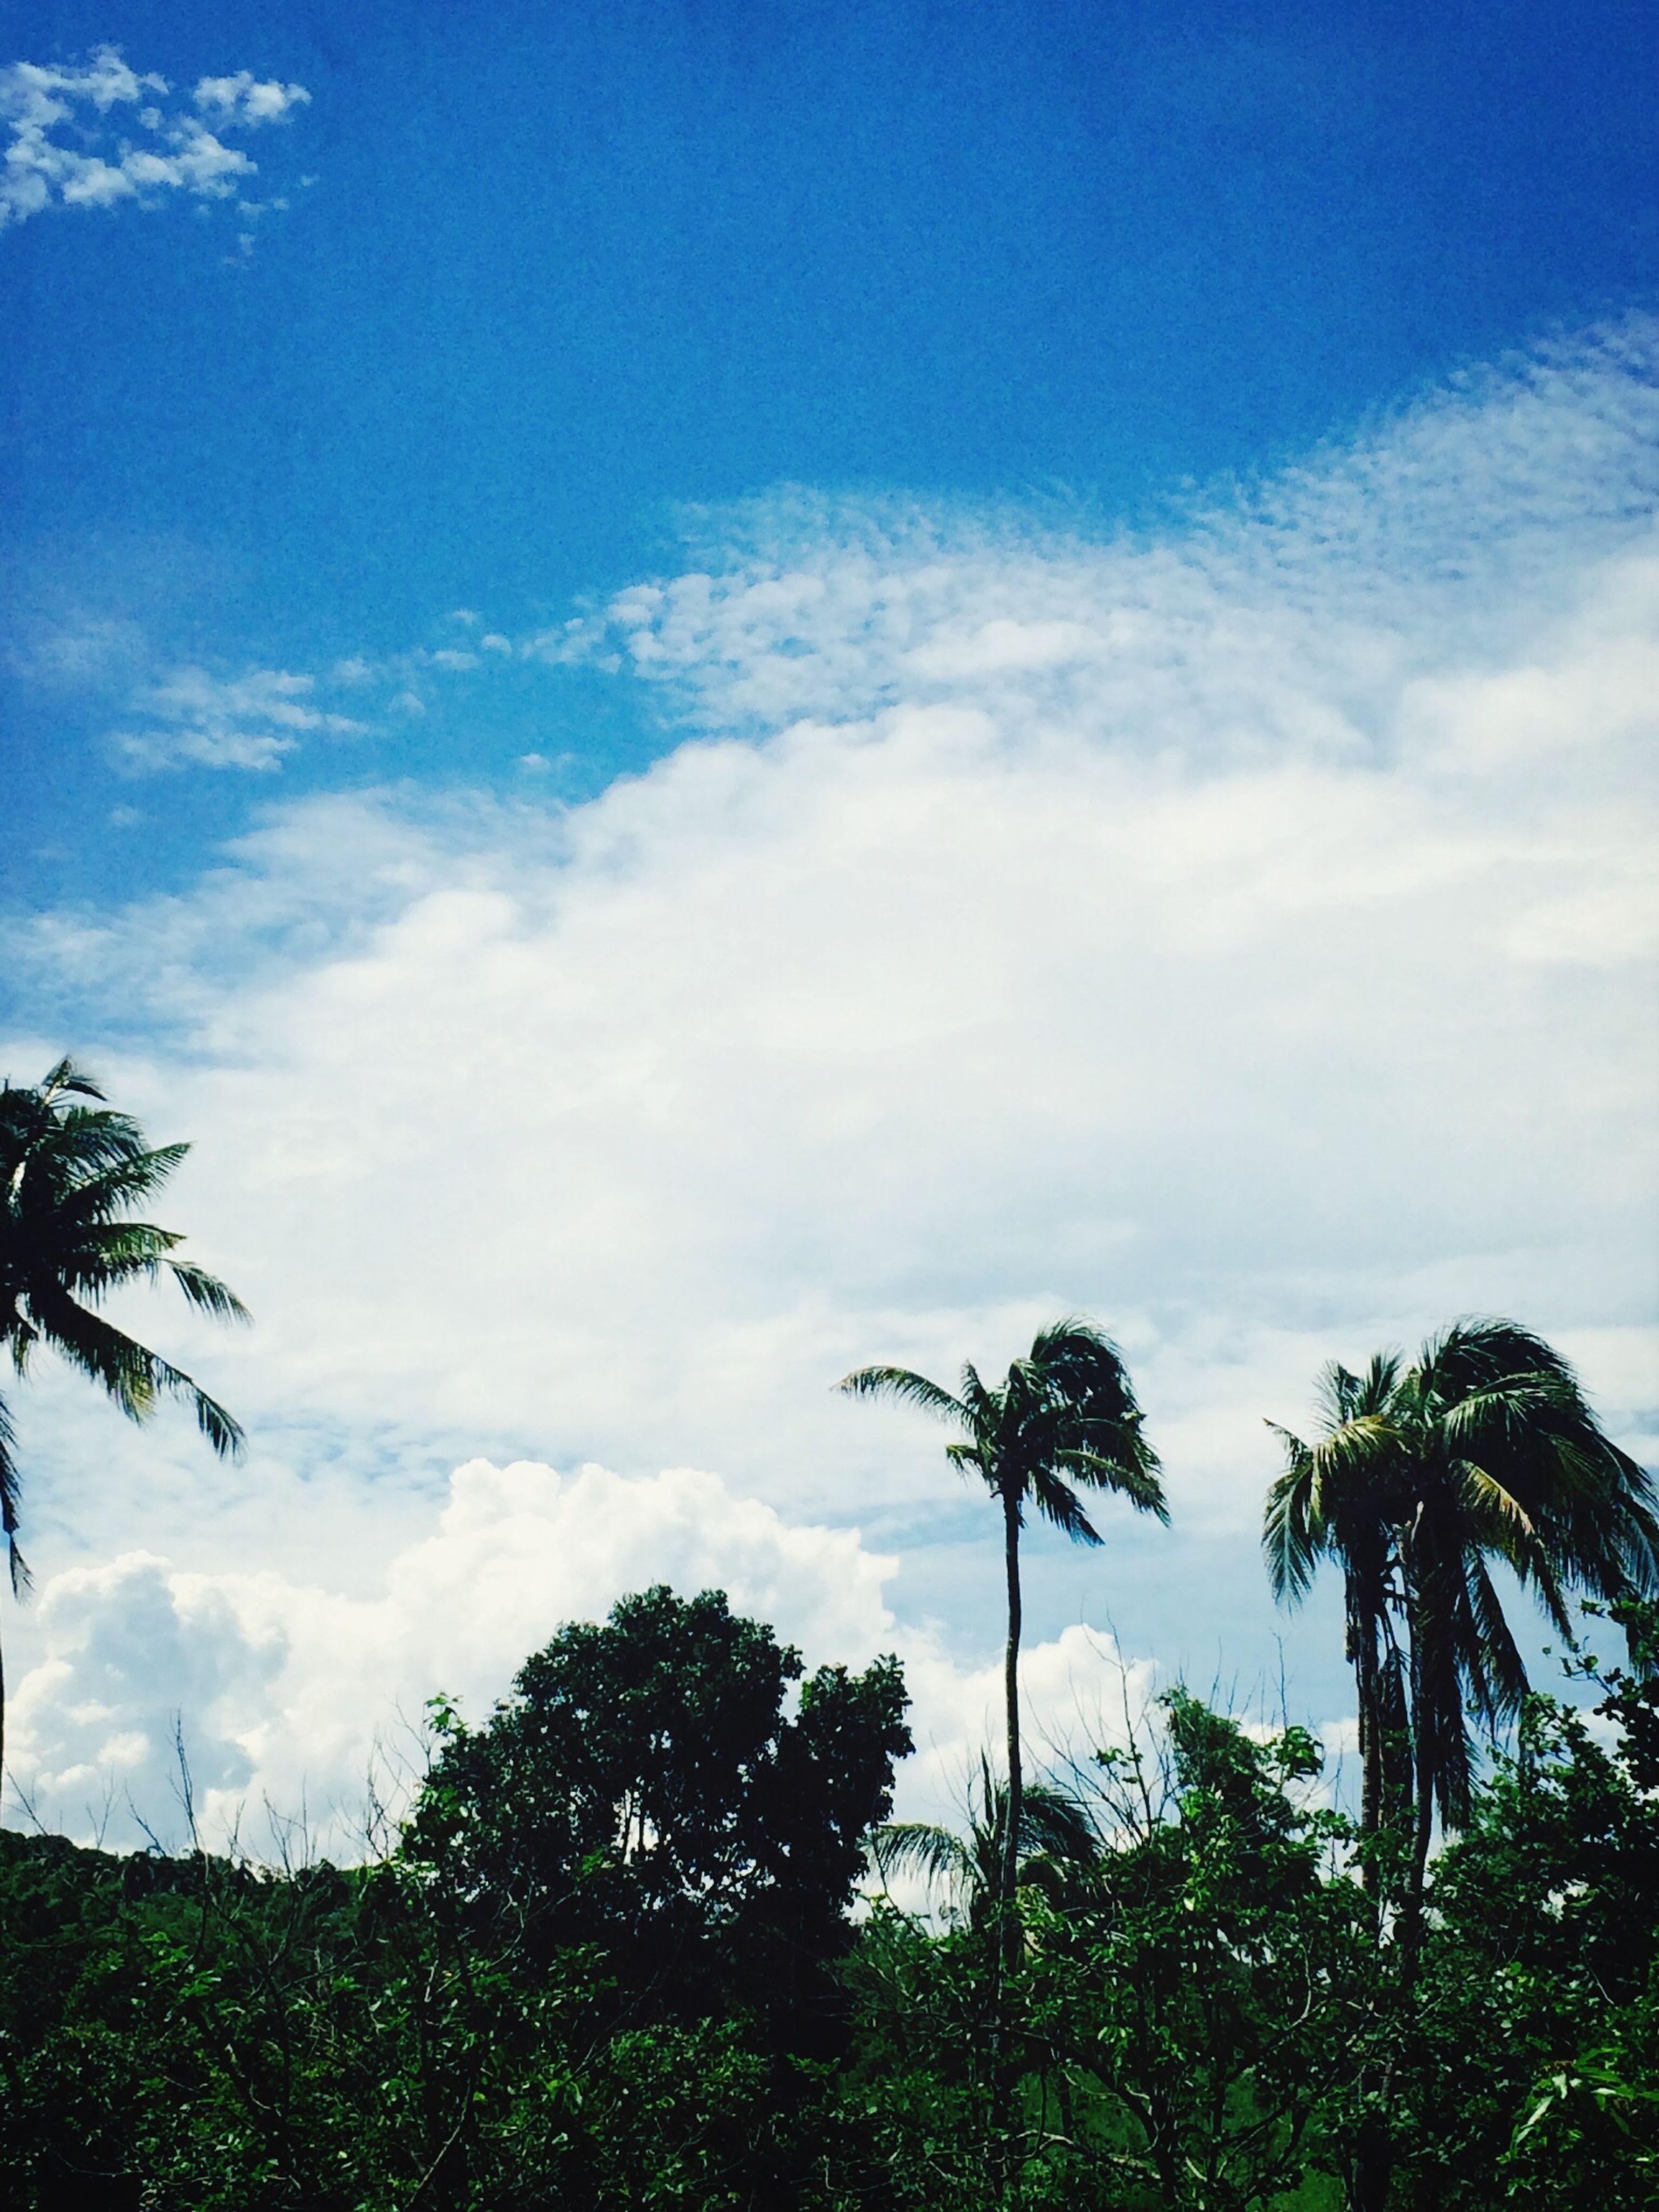 palm tree, tree, low angle view, sky, growth, tranquility, cloud - sky, beauty in nature, nature, blue, cloud, scenics, tree trunk, tranquil scene, silhouette, coconut palm tree, cloudy, tall - high, no people, branch